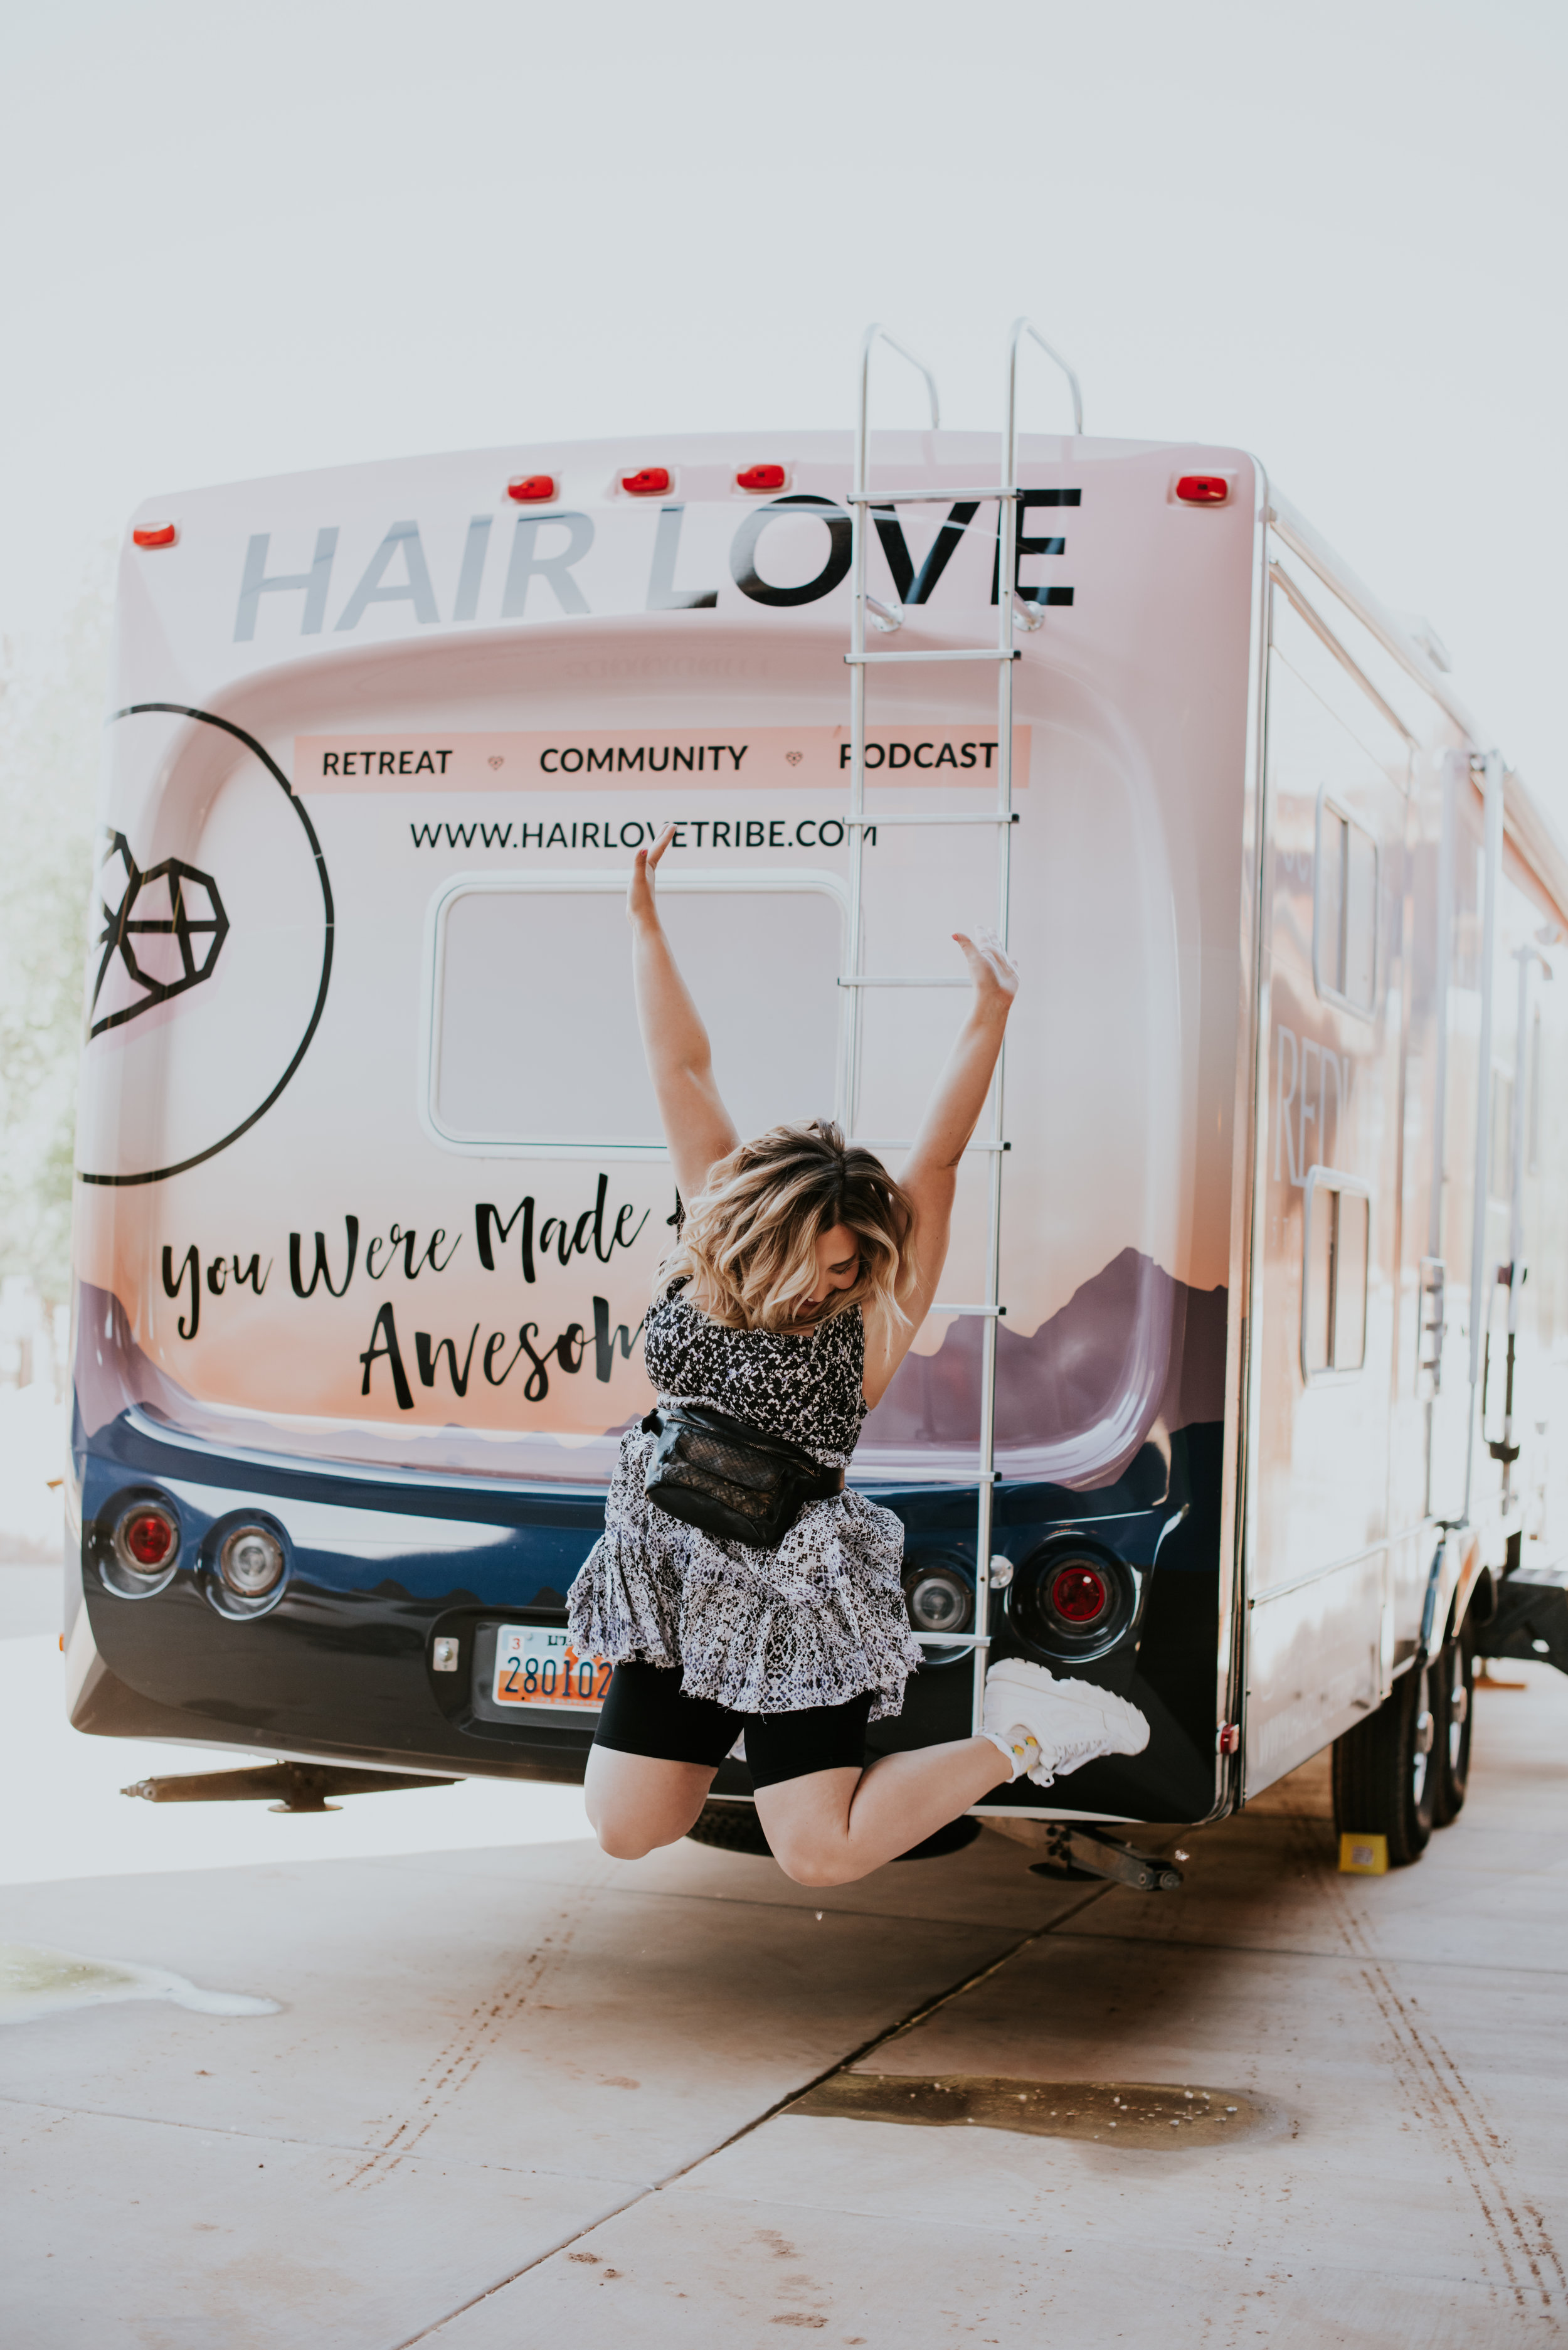 Are you a big fan of the Hair Love Radio Podcast?!Even if you aren't yet you will be after watching a live show. The big news is finally out! The #hairloverv (yes RV!!!! holy moly) is hitting the road this July!We will be hosting LIVE shows, meet ups, popups and more opportunities to be a part of this amazing tribe of stylists.A big thanks to Redken & Schedulicity for making this magical month of gatherings, events & meetups possible!We want you there! Snag your ticket, seats are limited and will fly!! -